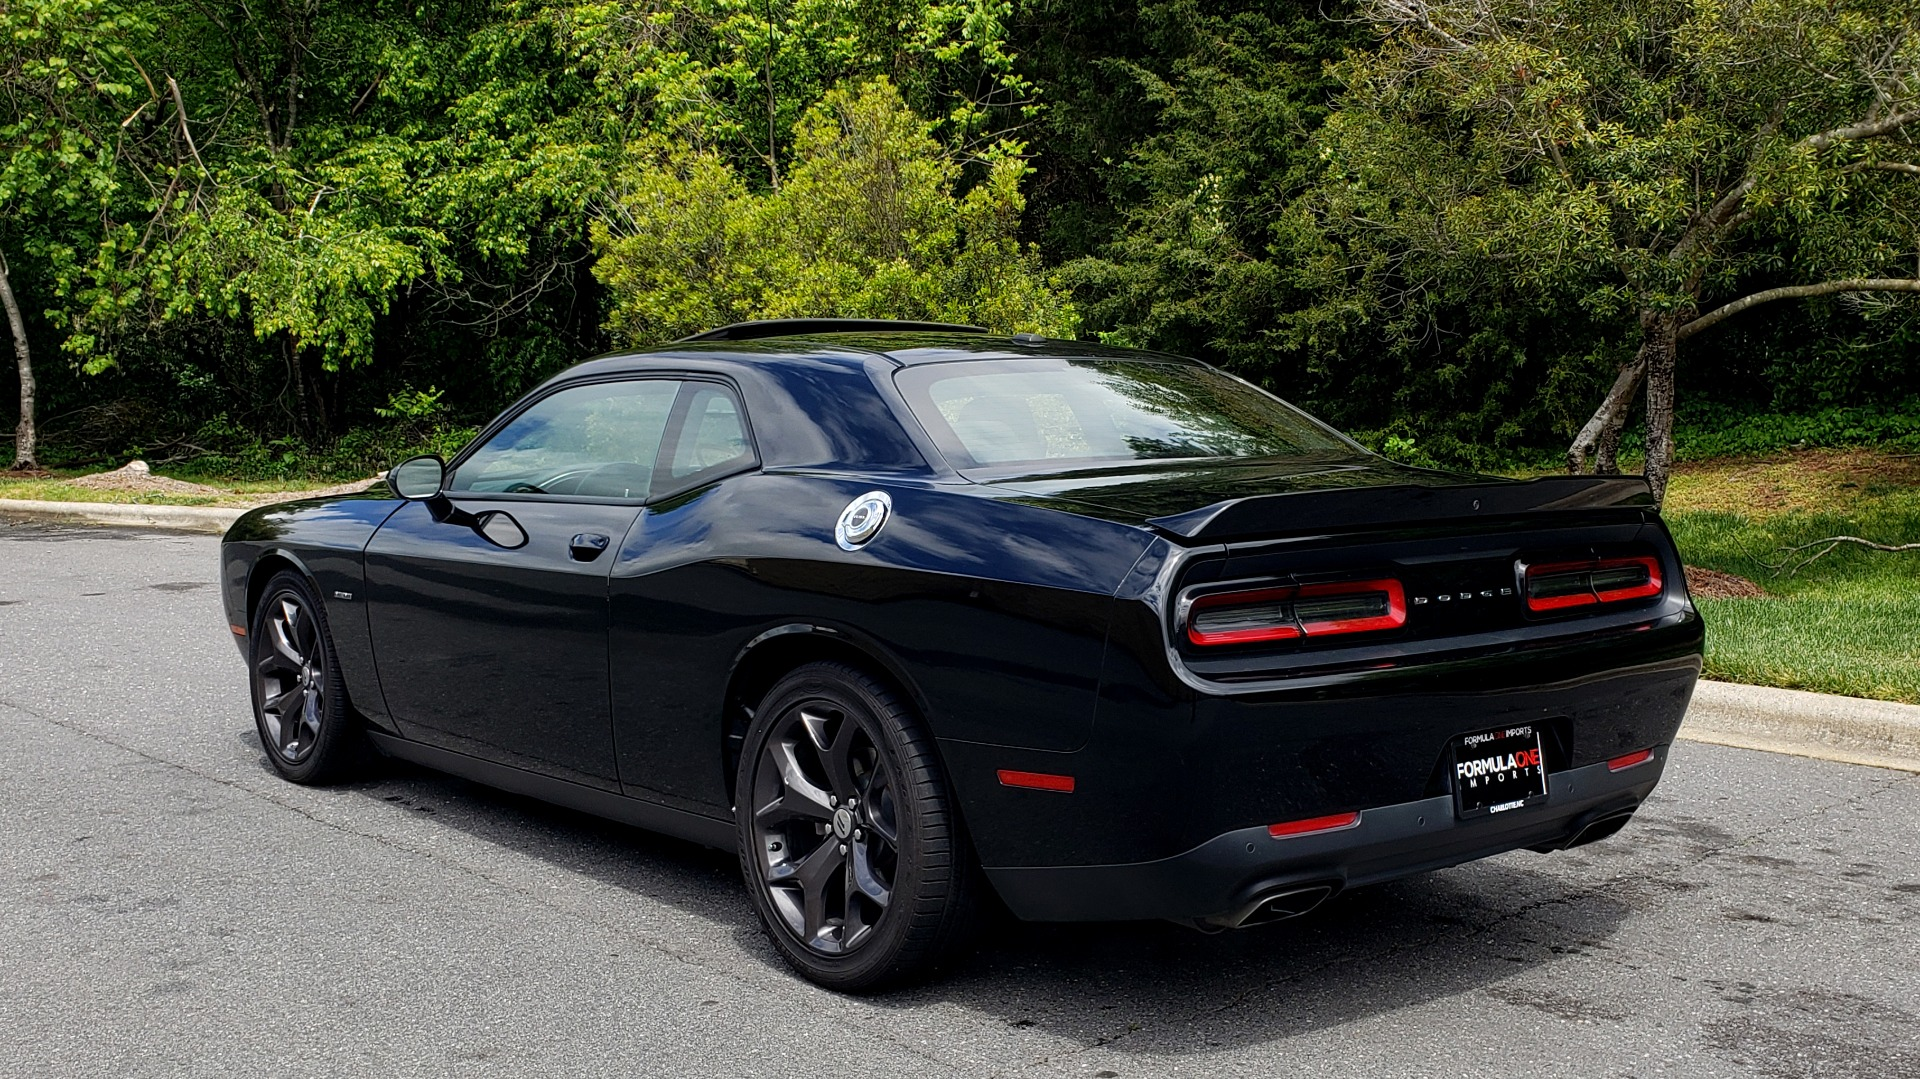 Used 2017 Dodge CHALLENGER R/T / 5.7L HEMI V8 / 8-SPD AUTO / SUNROOF / REARVIEW for sale Sold at Formula Imports in Charlotte NC 28227 3